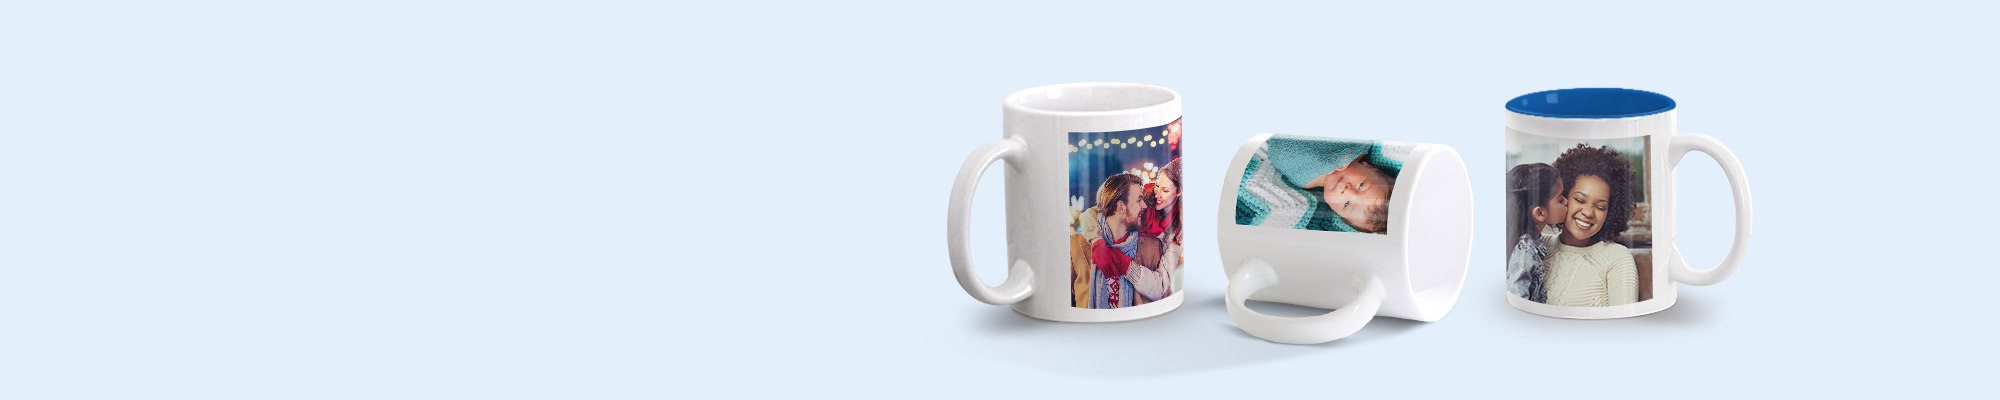 Photo mugs create a beautiful personalised mug boots photo Design your own mugs uk